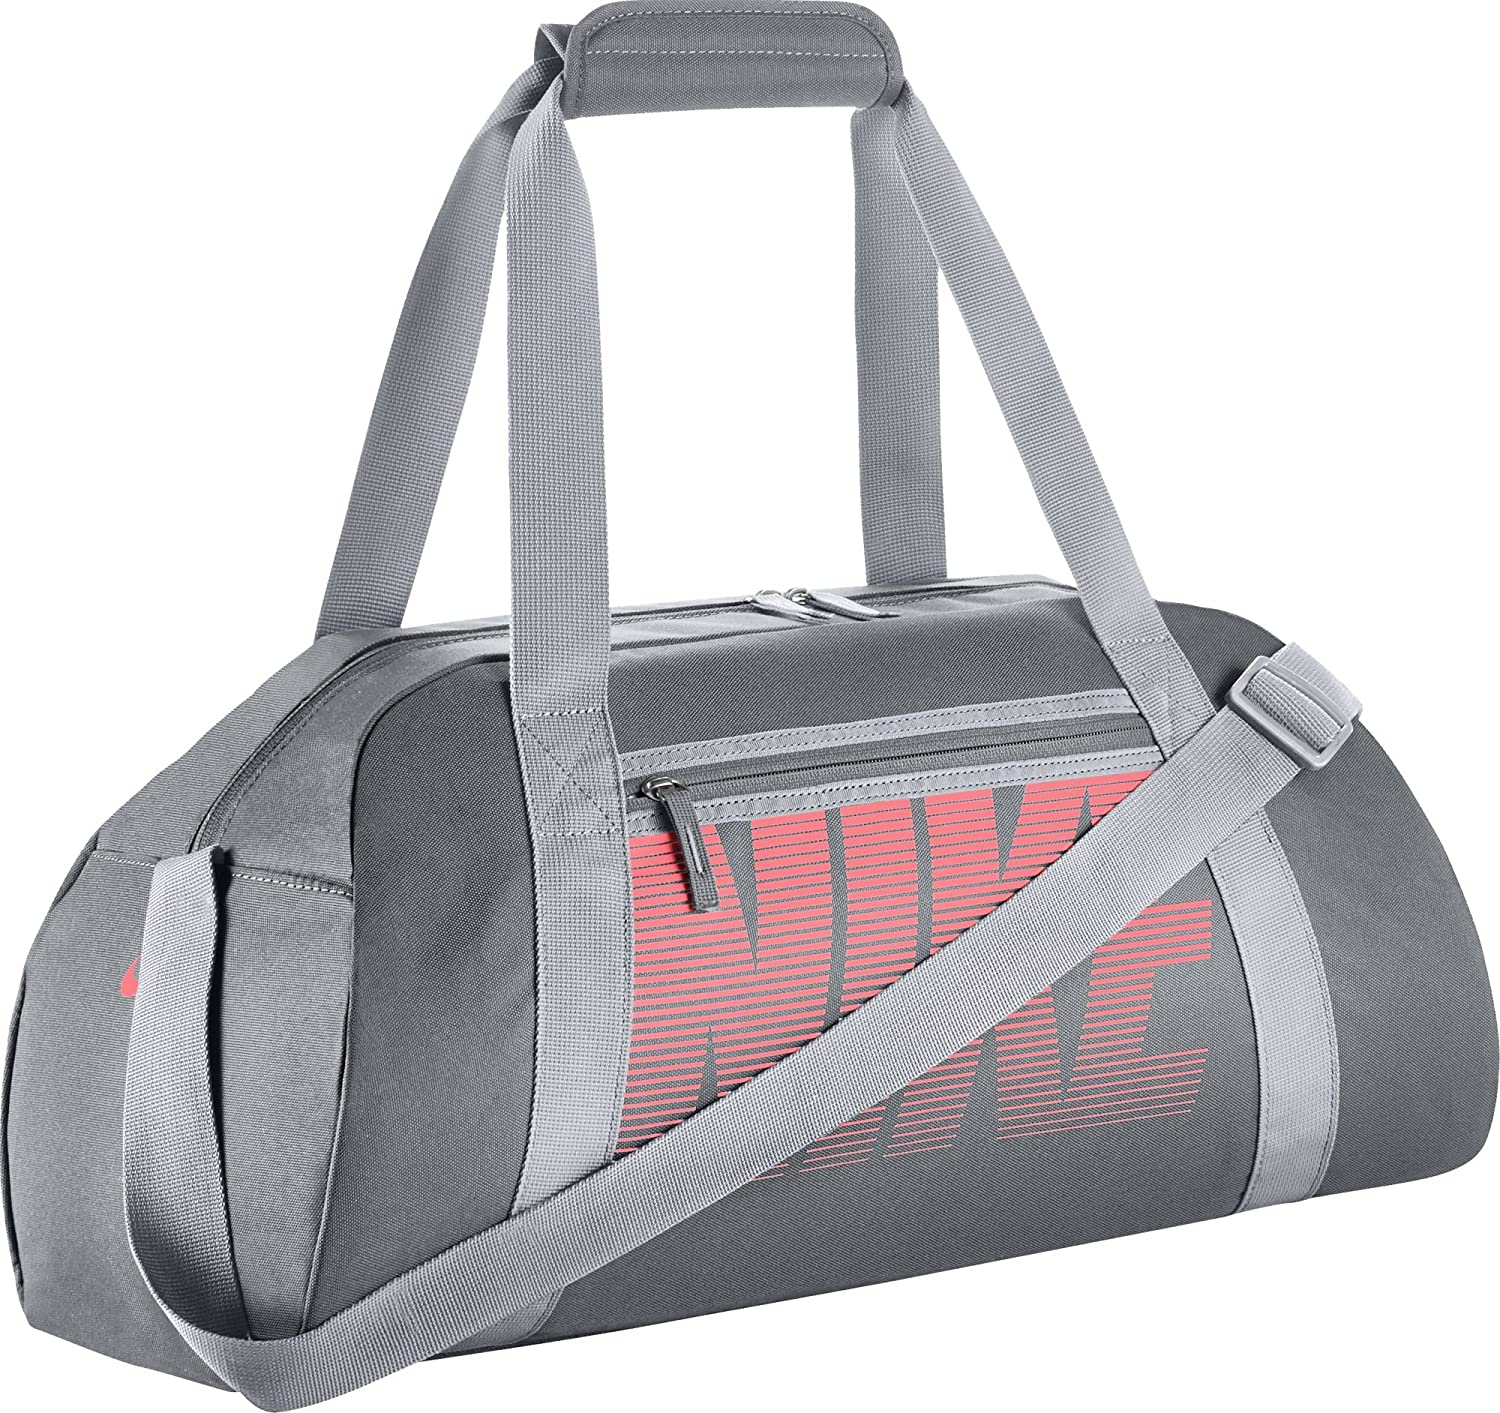 290f18bbf90c Nike Women s Gym Club Sports Bag